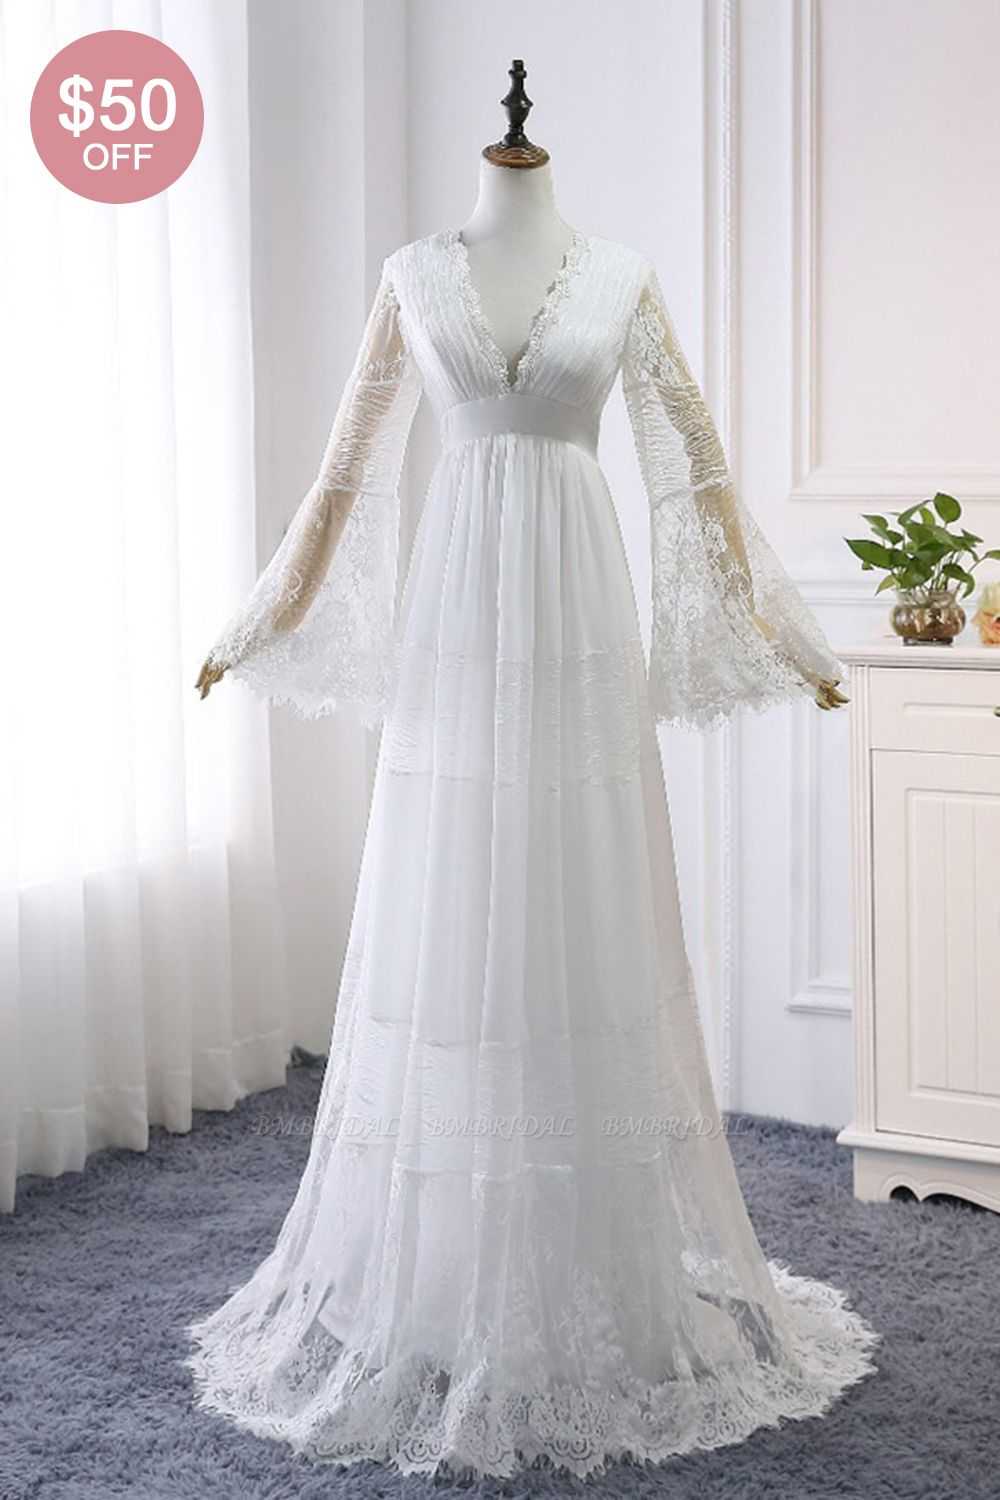 BMbridal Chic Empire Lace Tulle Wedding Dress Long Sleeves V-Neck Appliques Bridal Gowns On Sale